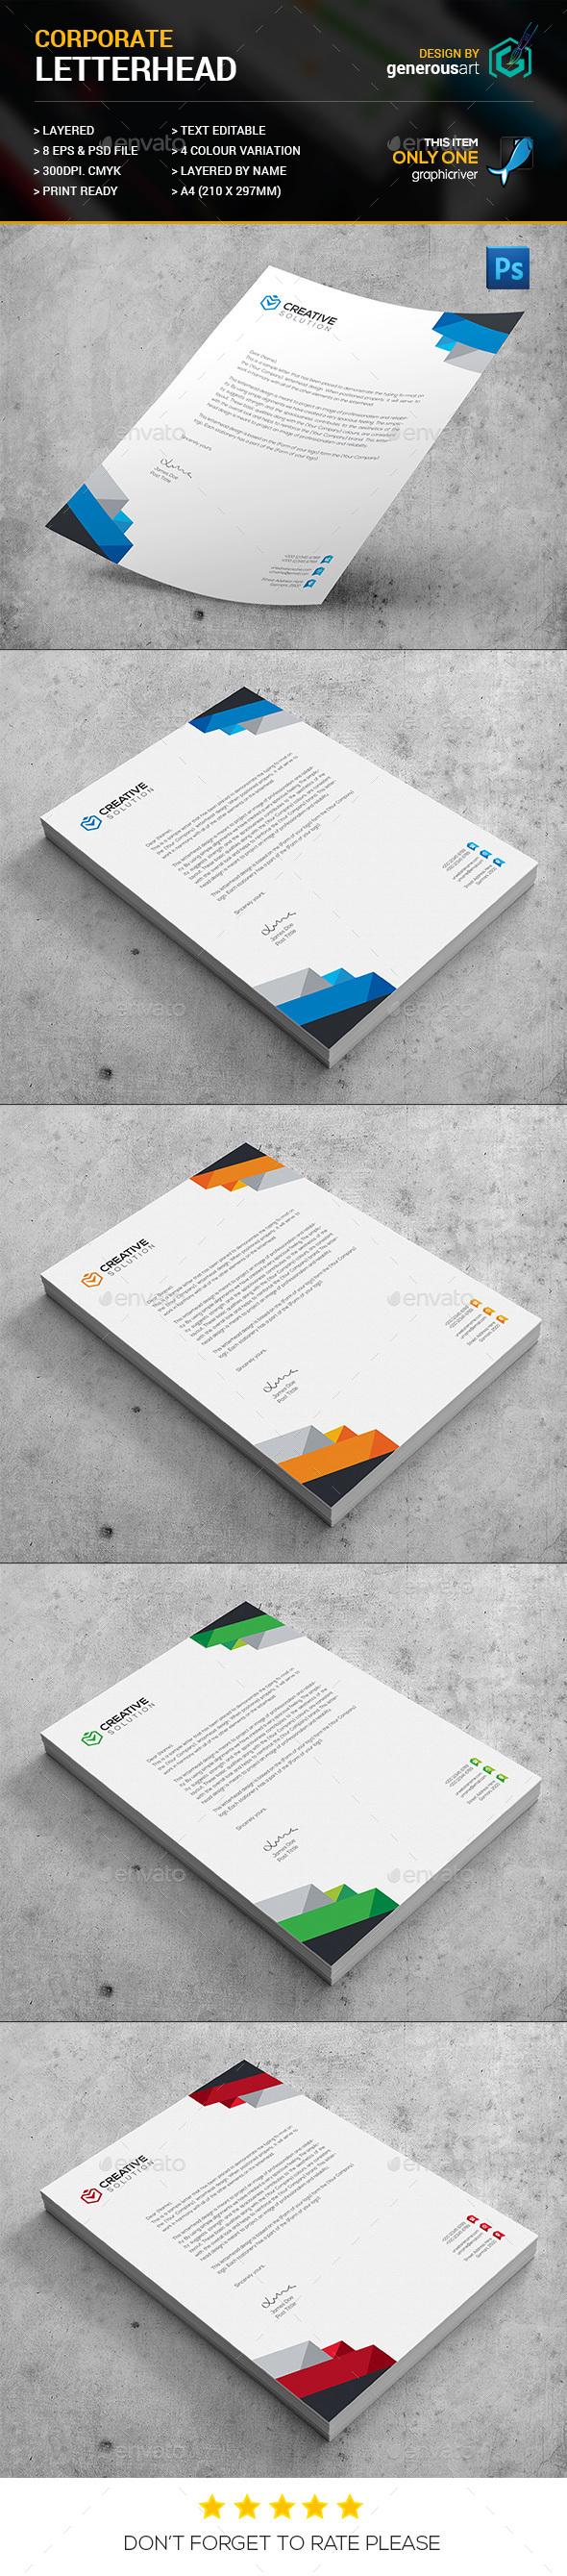 Clean Corporate Letterhead - Stationery Print Templates